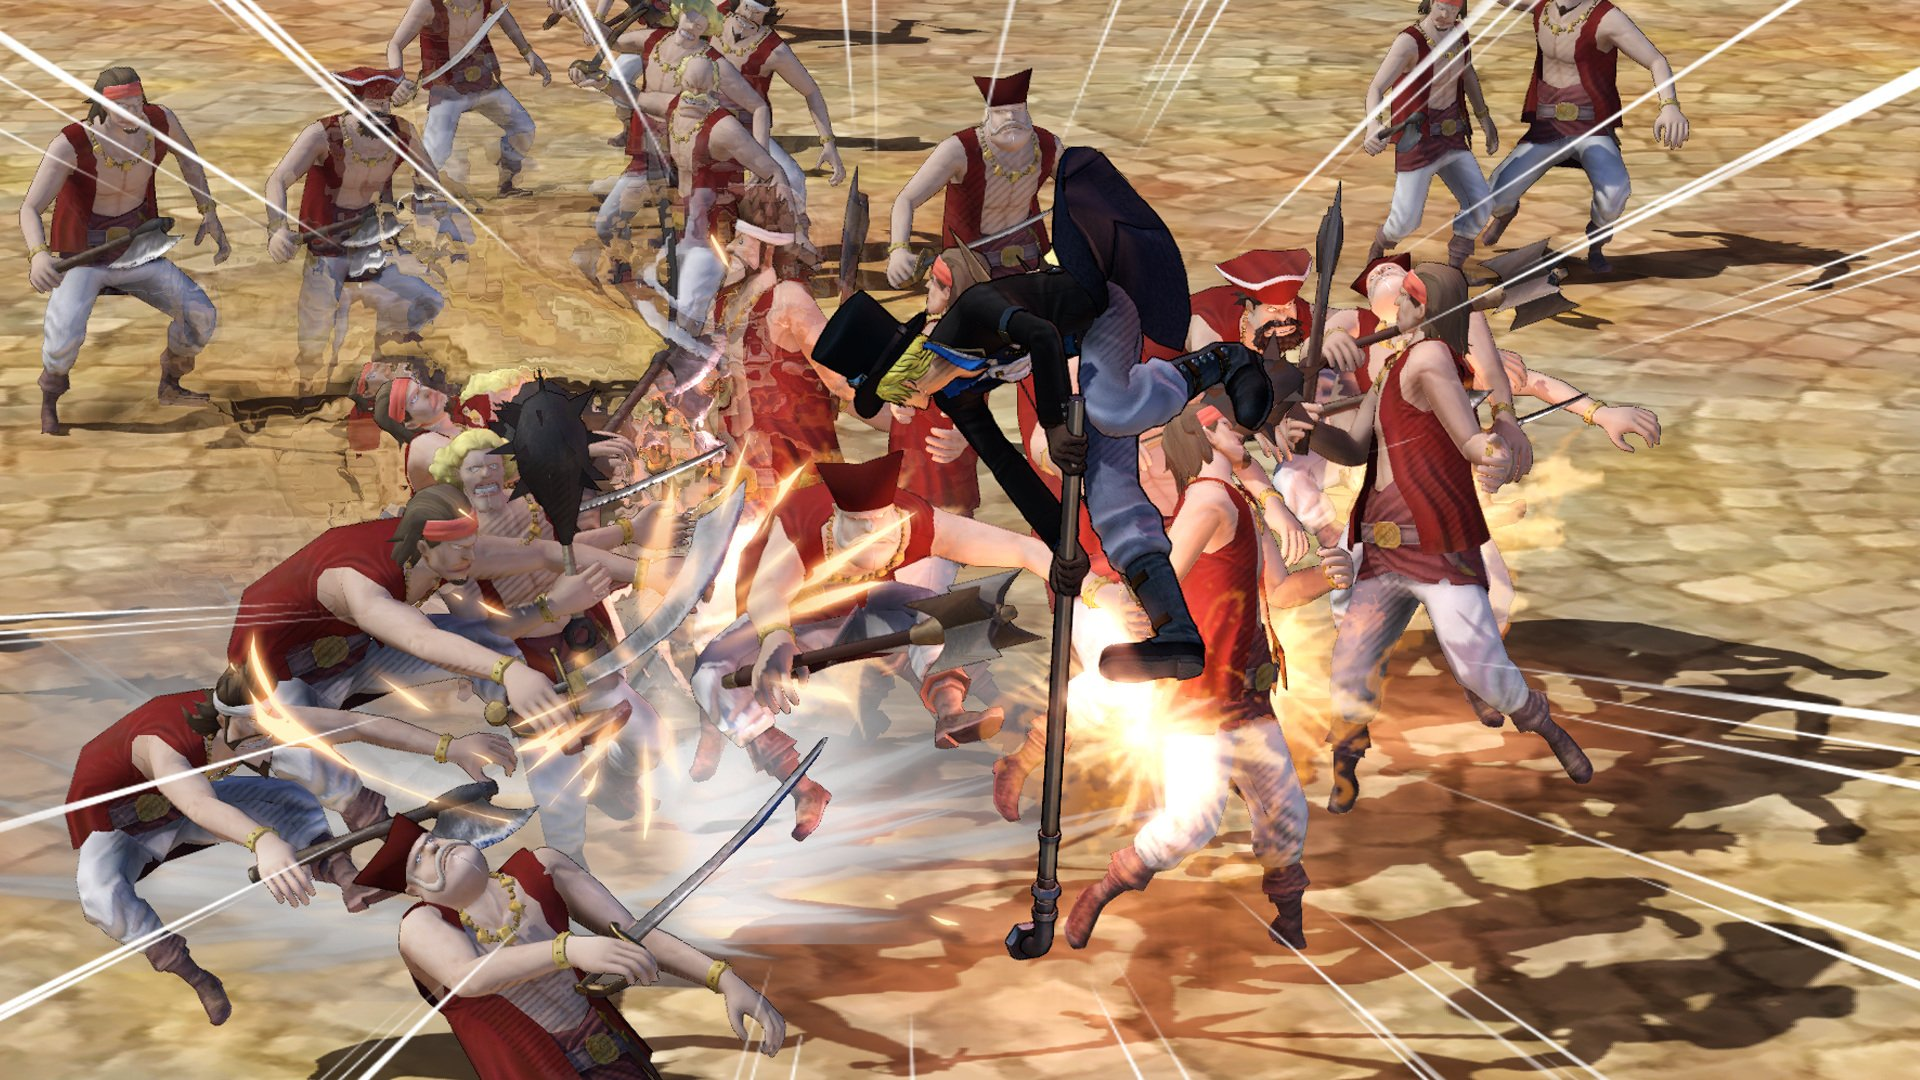 one_piece_pirate_warriors_3-2753137.jpg